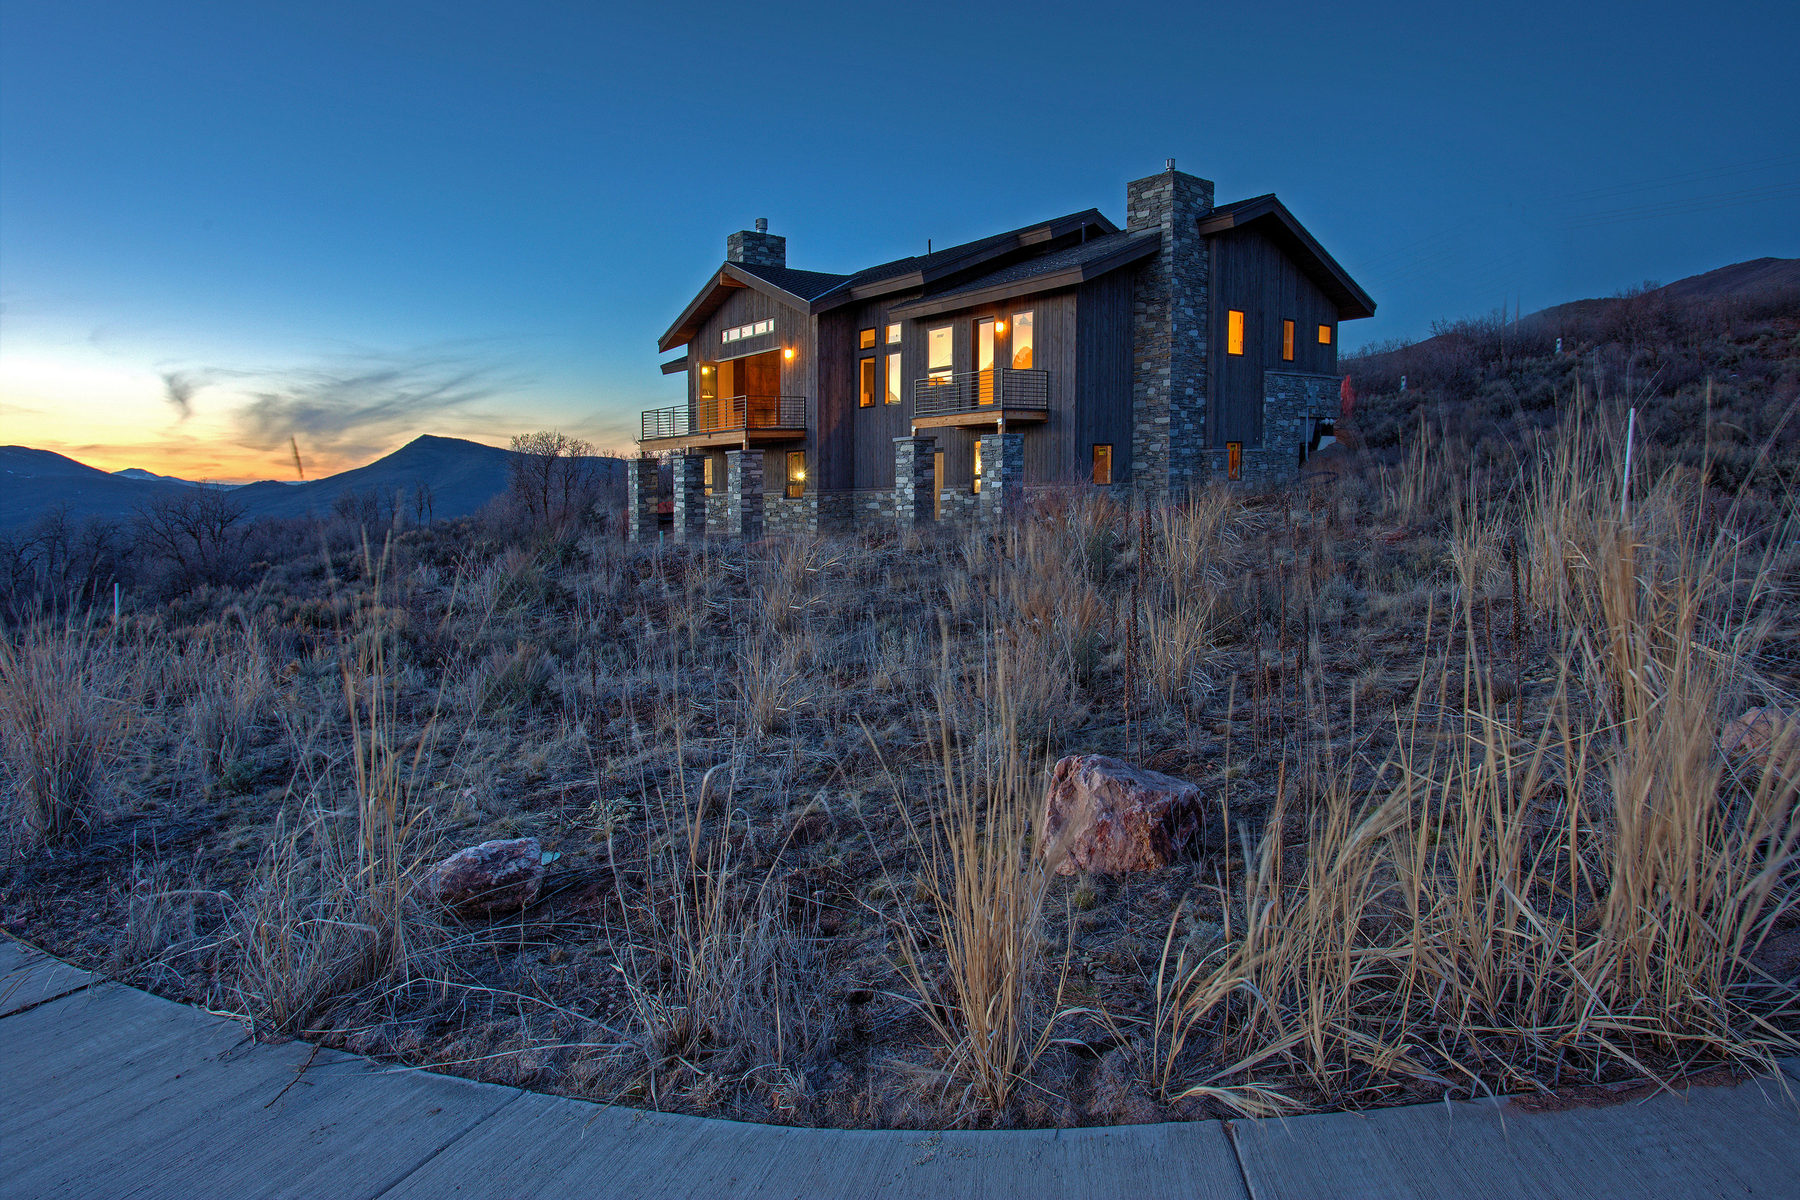 Property For Sale at Warm Mountain Modern New Construction in Stunning Hideout Canyon